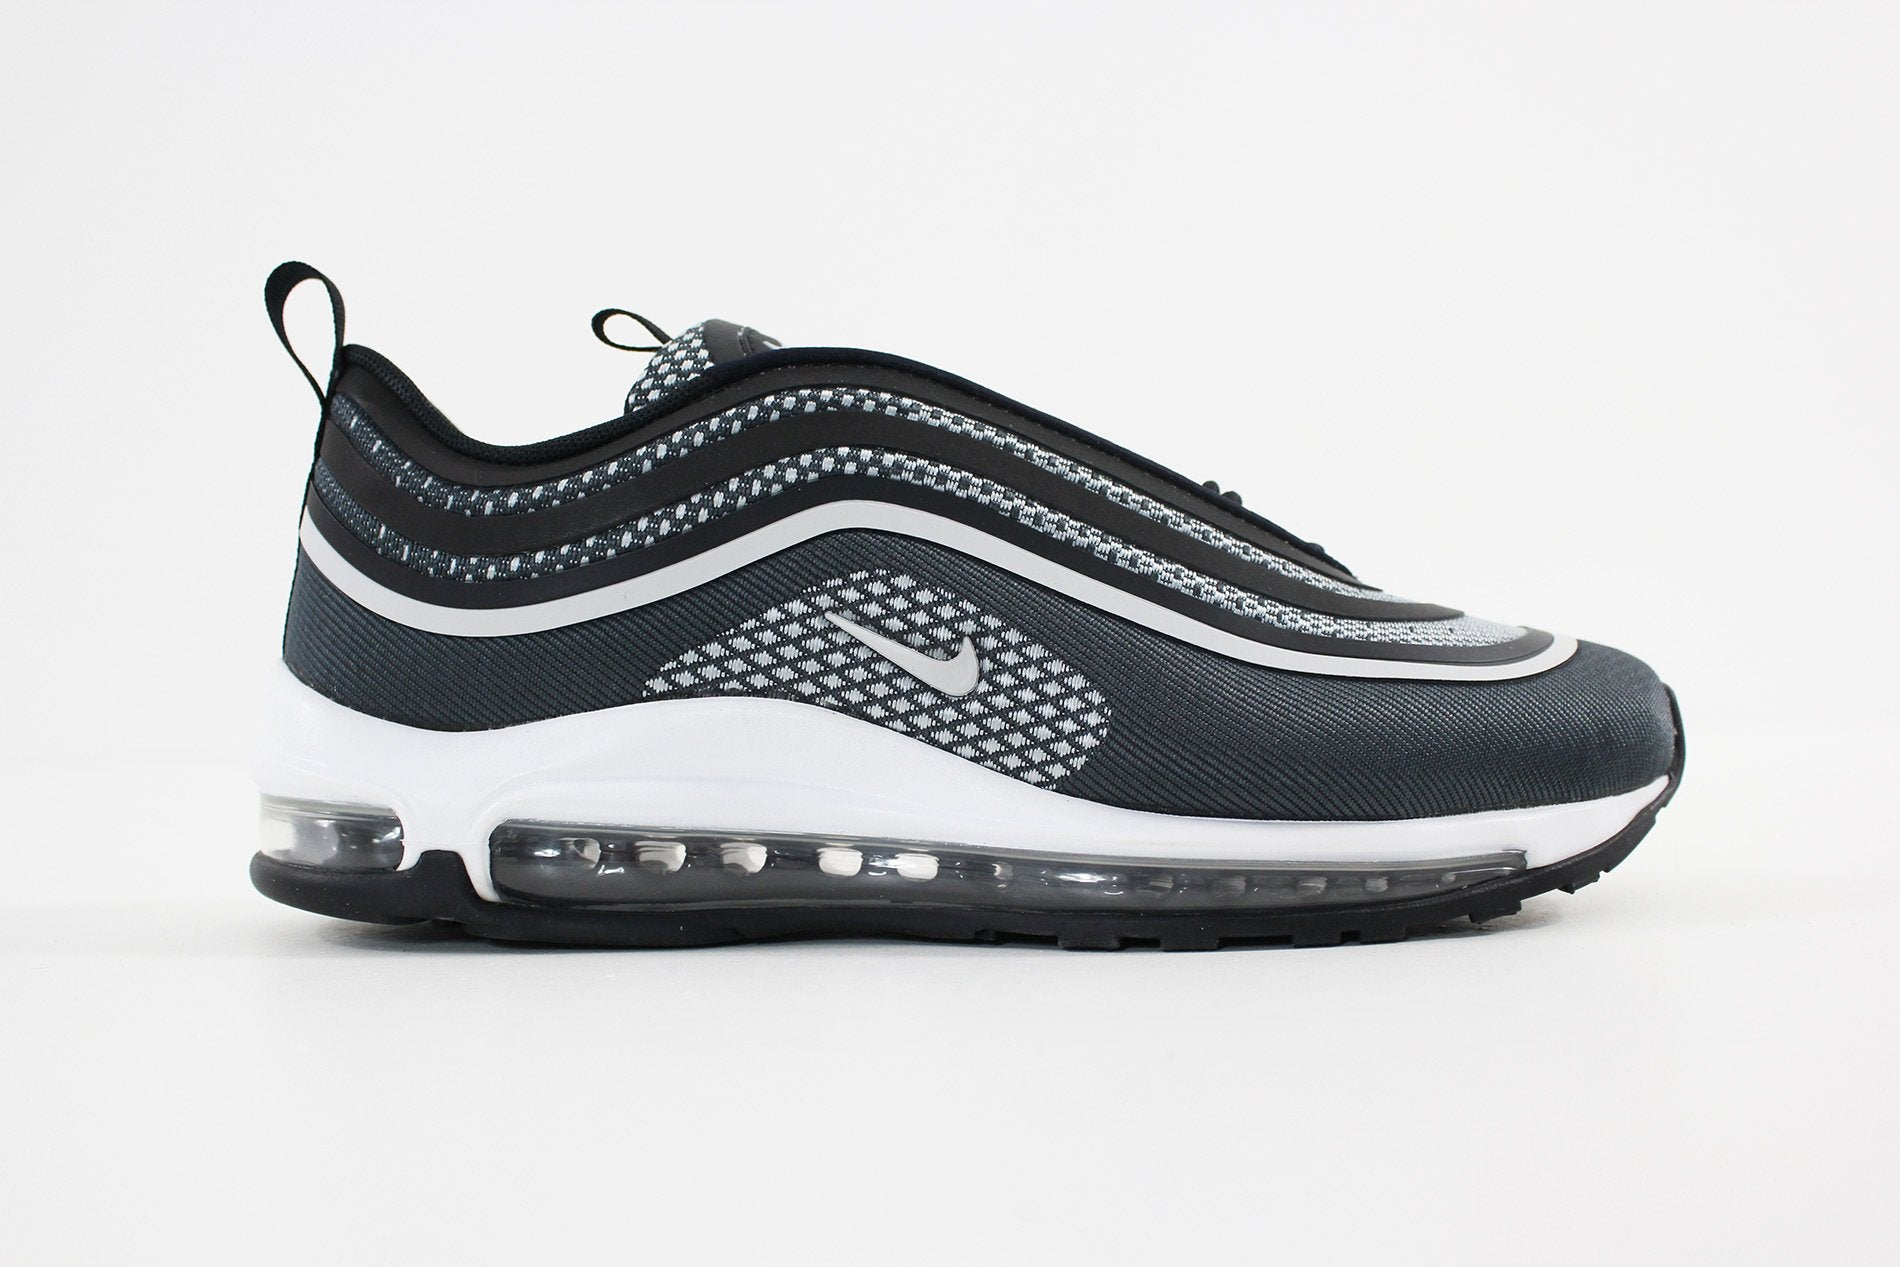 Nike - Men's Air Max 97 UL '17 (BLACK/PURE PLATINUM-ANTHRACITE-WHITE) 918356-001